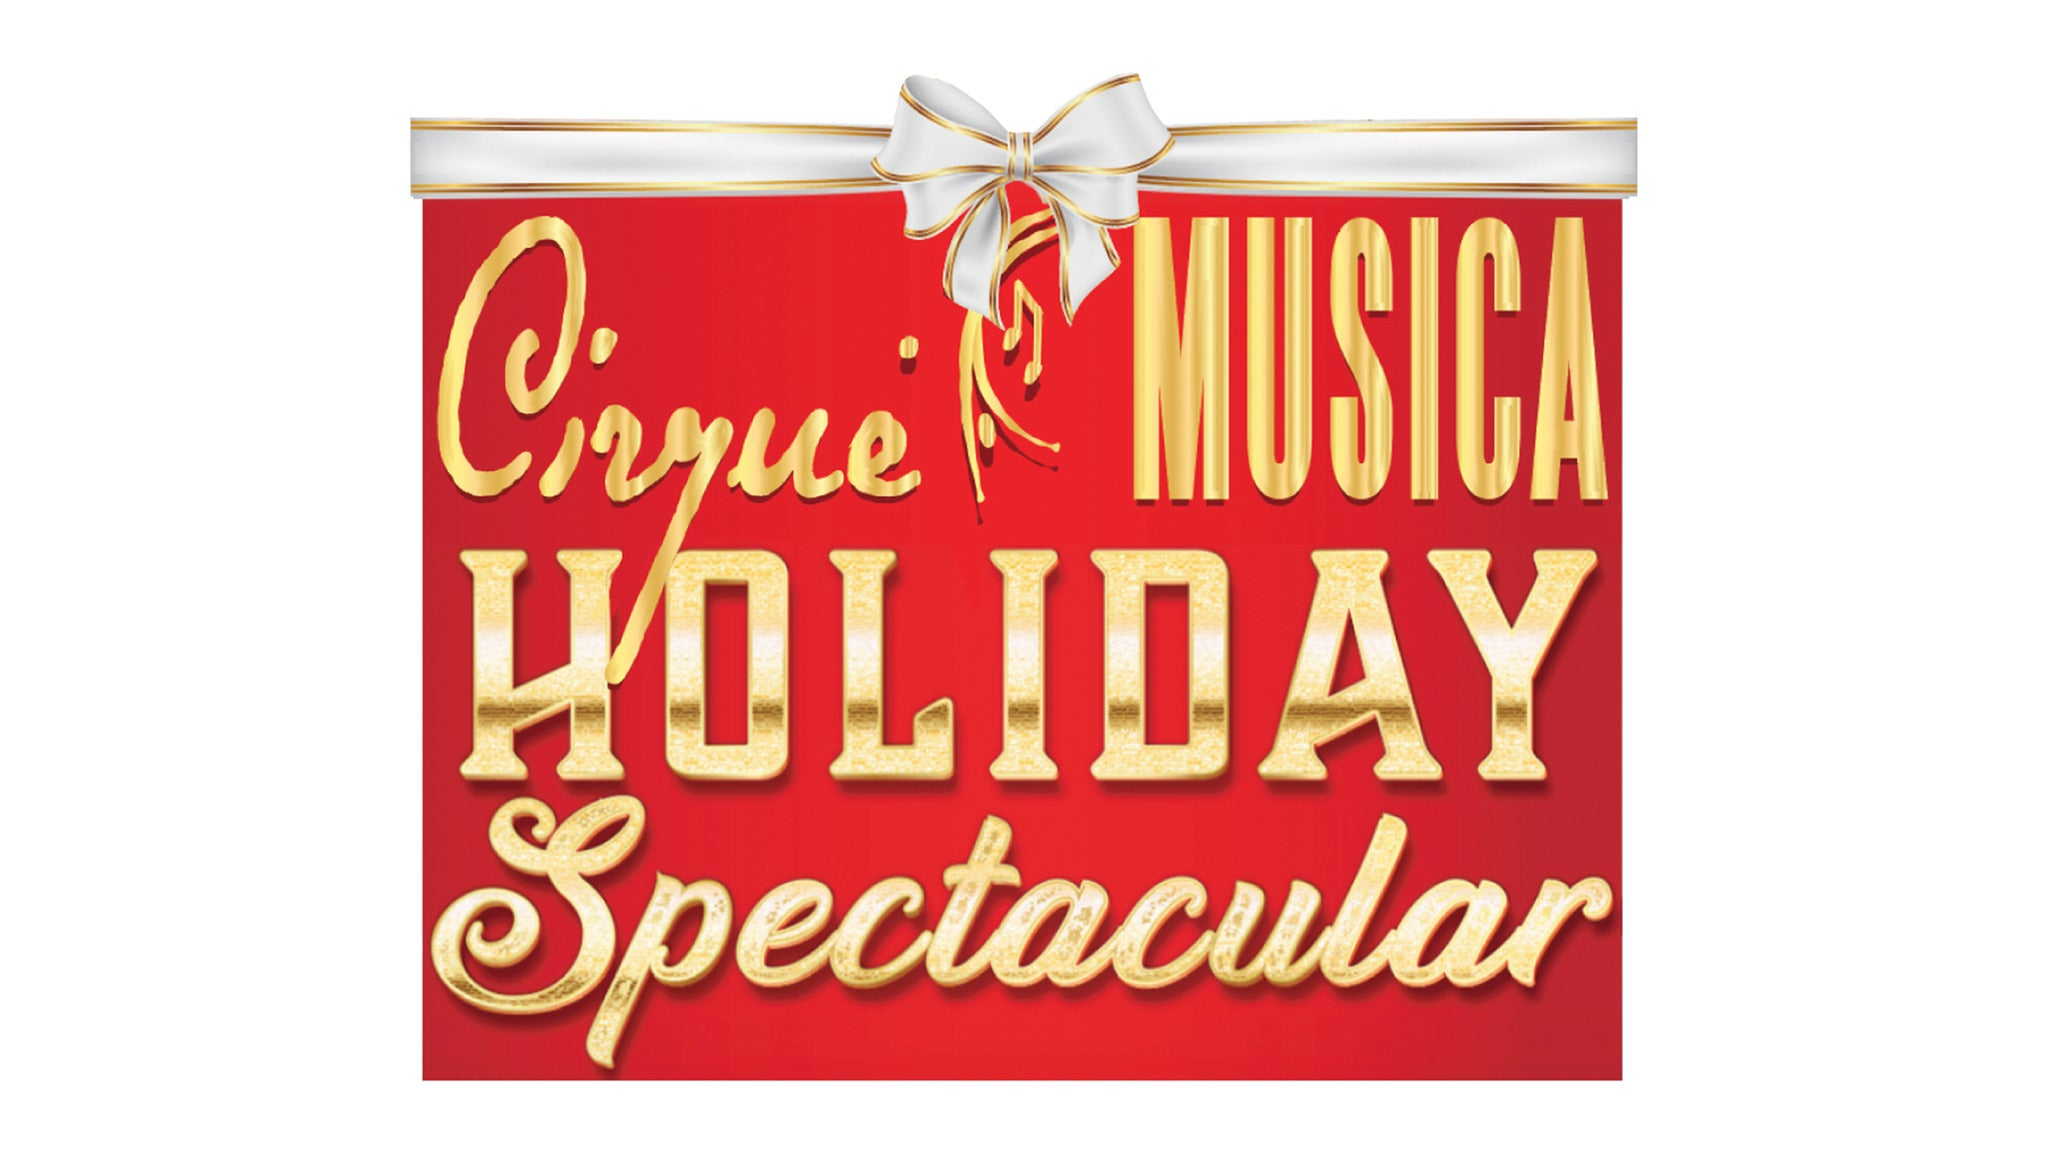 Cirque Musica Holiday Spectacular at The Wellmont Theater